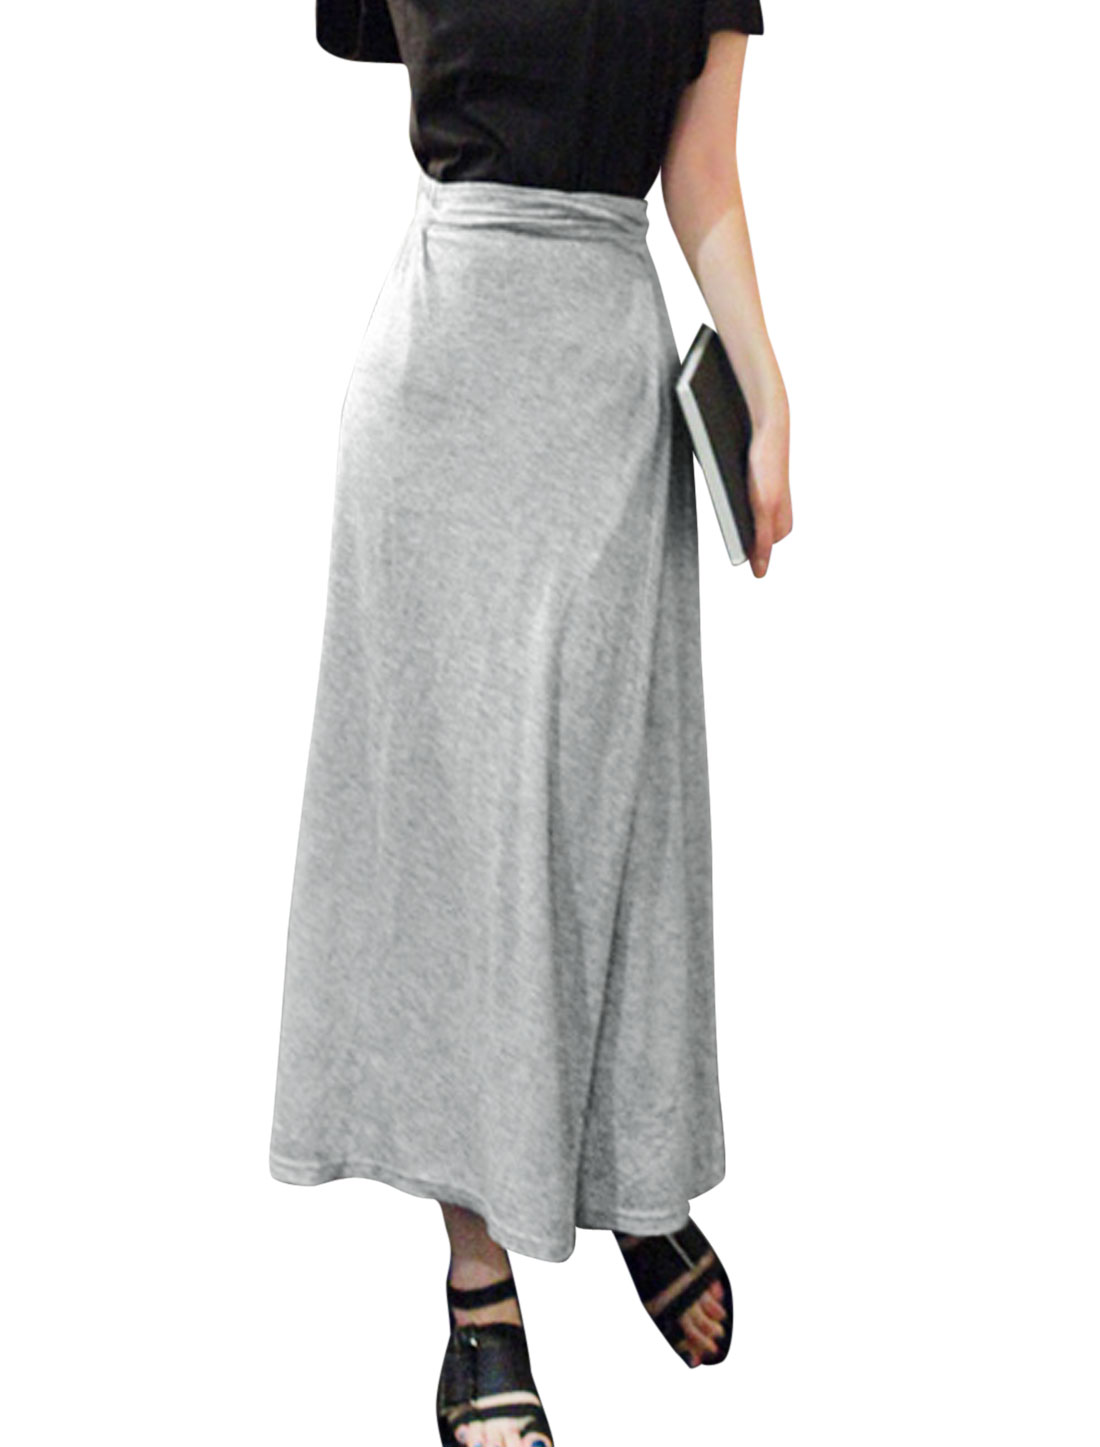 Women Stretchy Self Tie String Waist Mid Calf Skirt Light Gray S